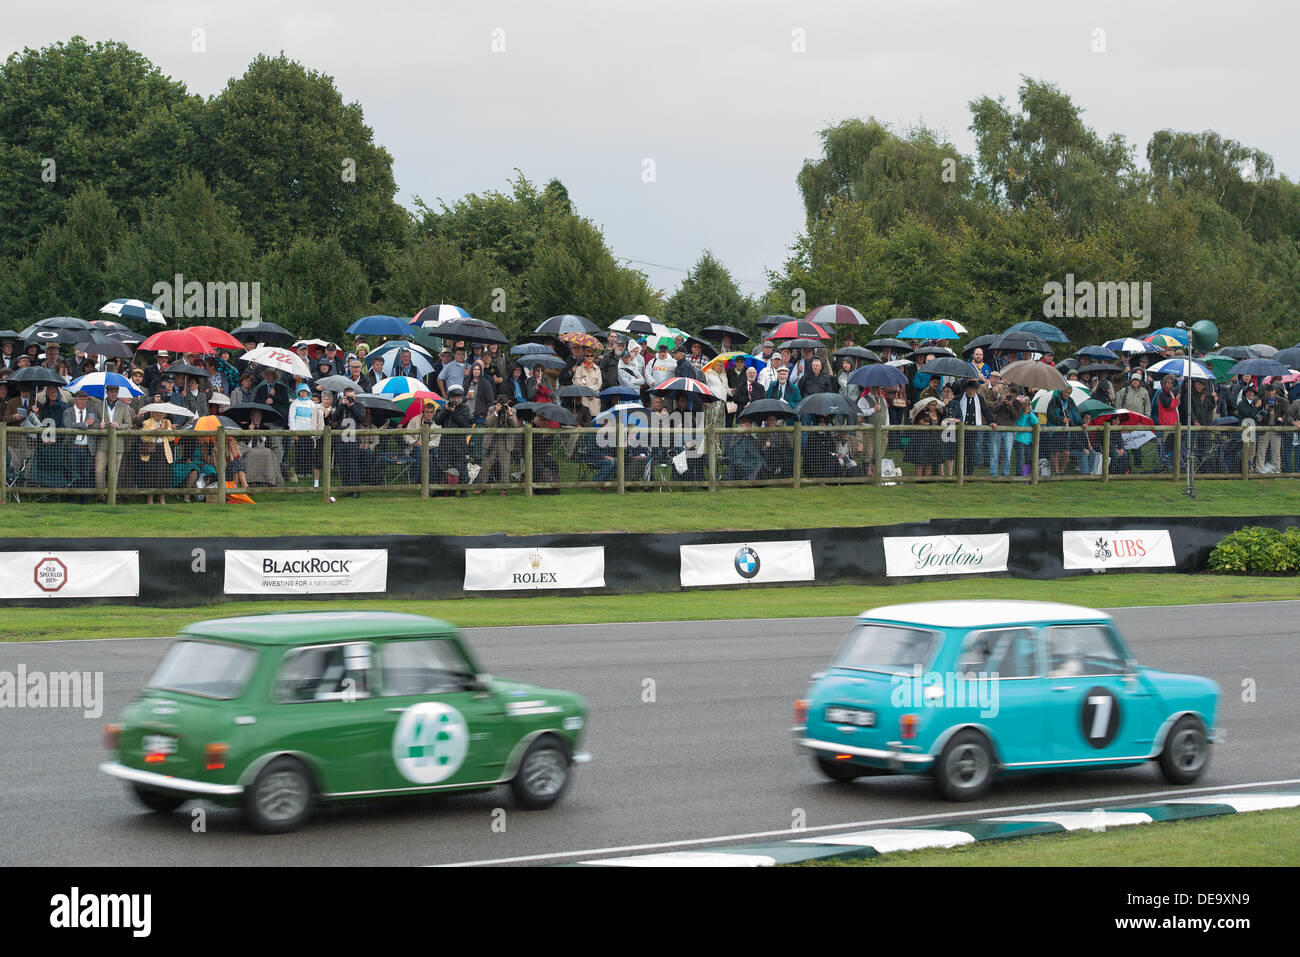 Chichester, West Sussex, UK. 13. September 2013. Beim Goodwood Revival. Goodwood-Rennstrecke, West Sussex - Freitag, Stockbild